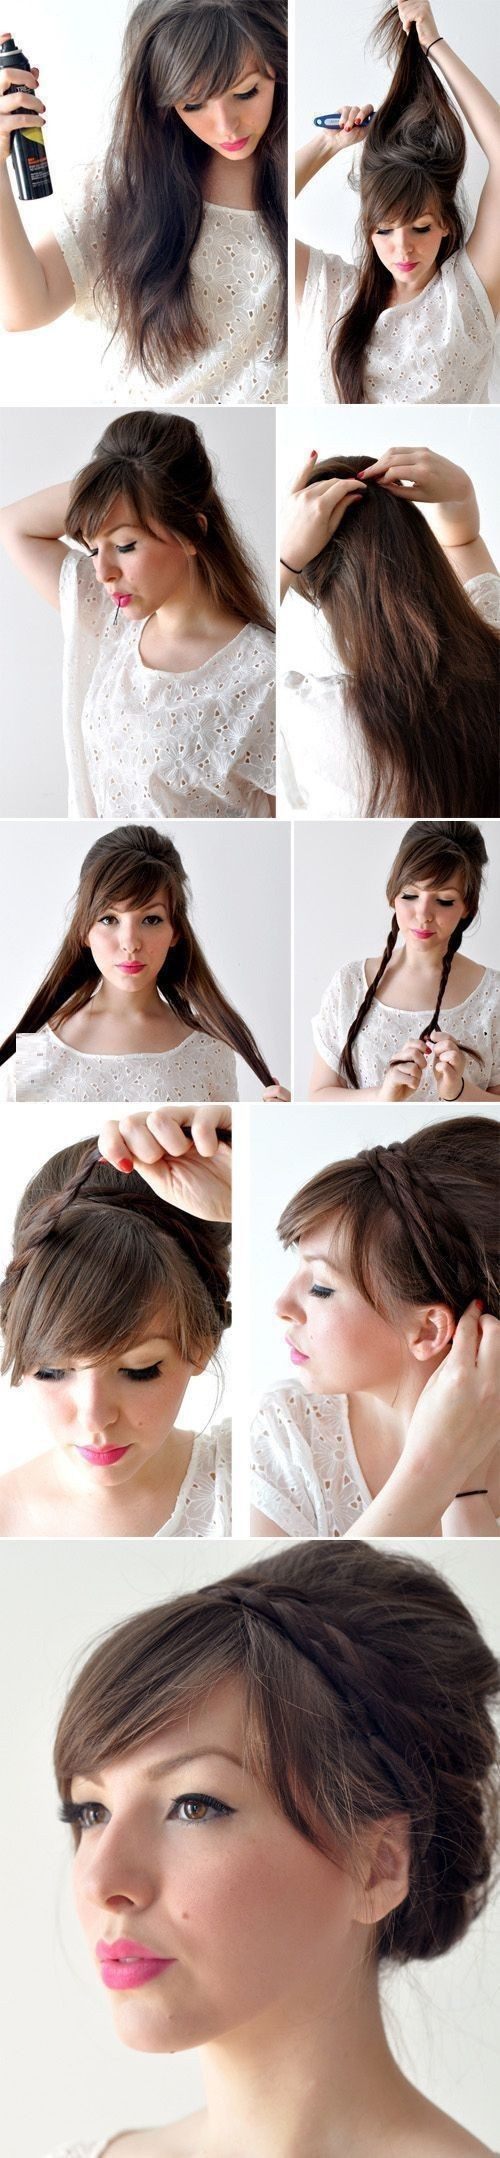 Updo for long hair, Beehive + Milkmaid Braids